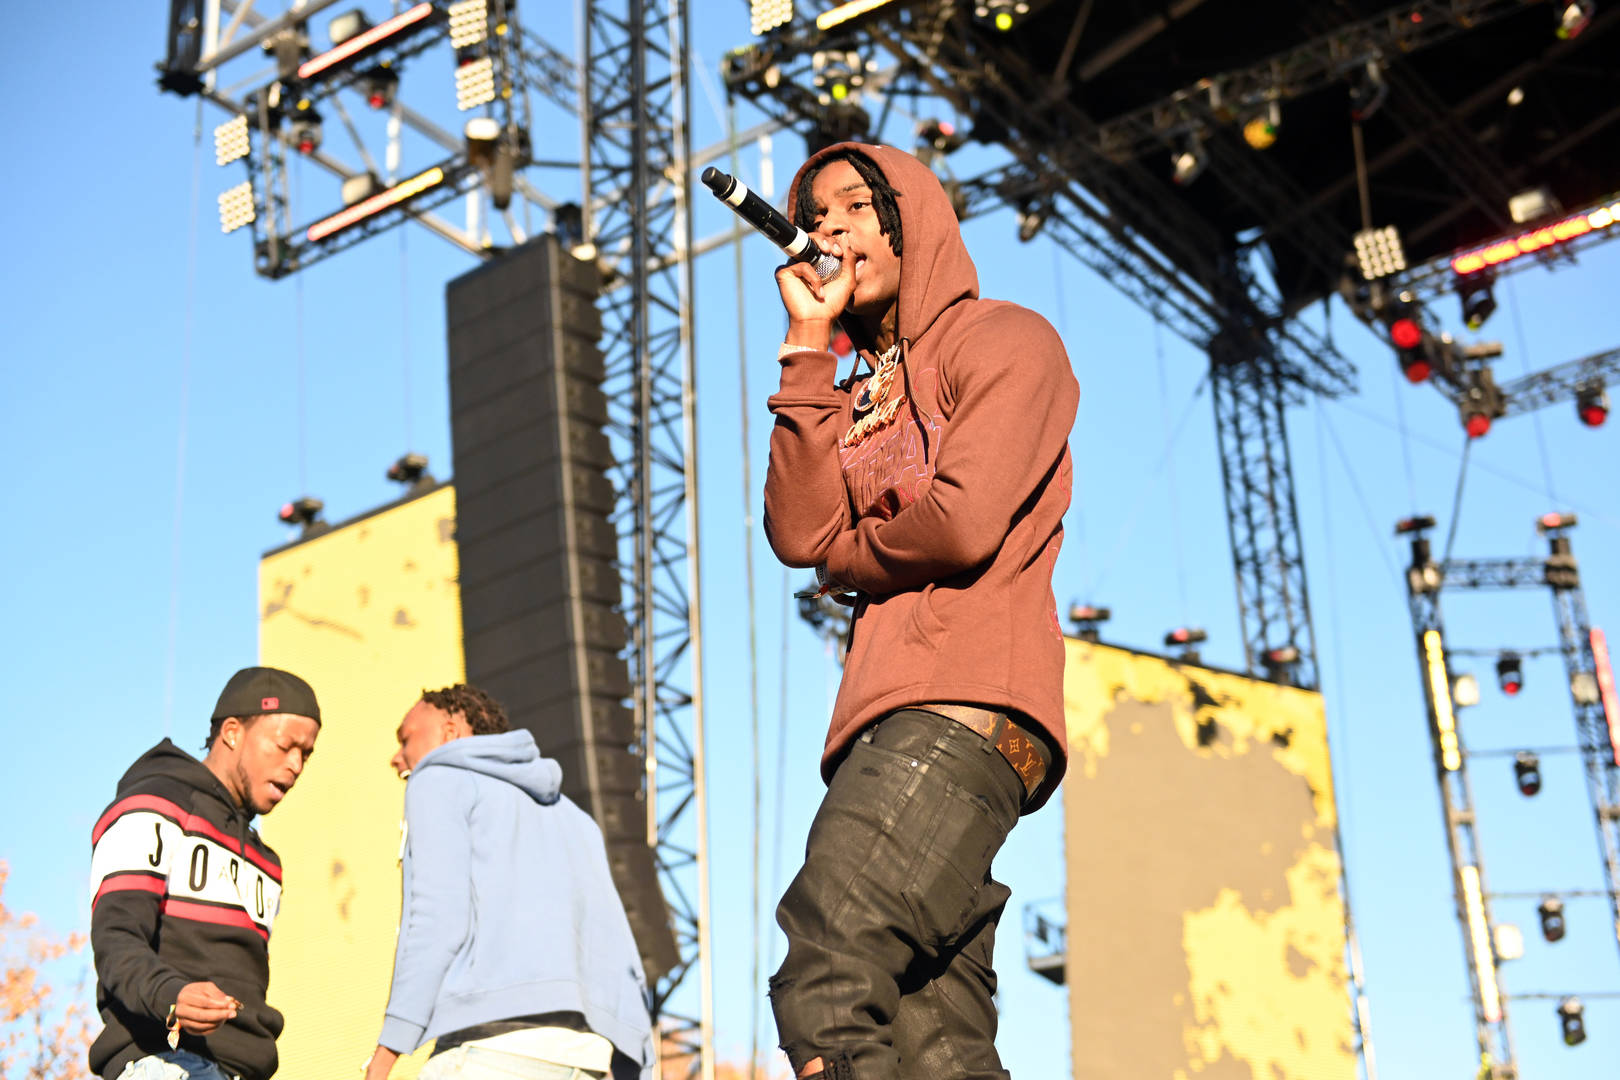 Rapper Polo G performs onstage during day 2 of the Rolling Loud Festival at Banc of California Stadium on December 15, 2019 in Los Angeles, California. (Photo by Scott Dudelson/Getty Images)